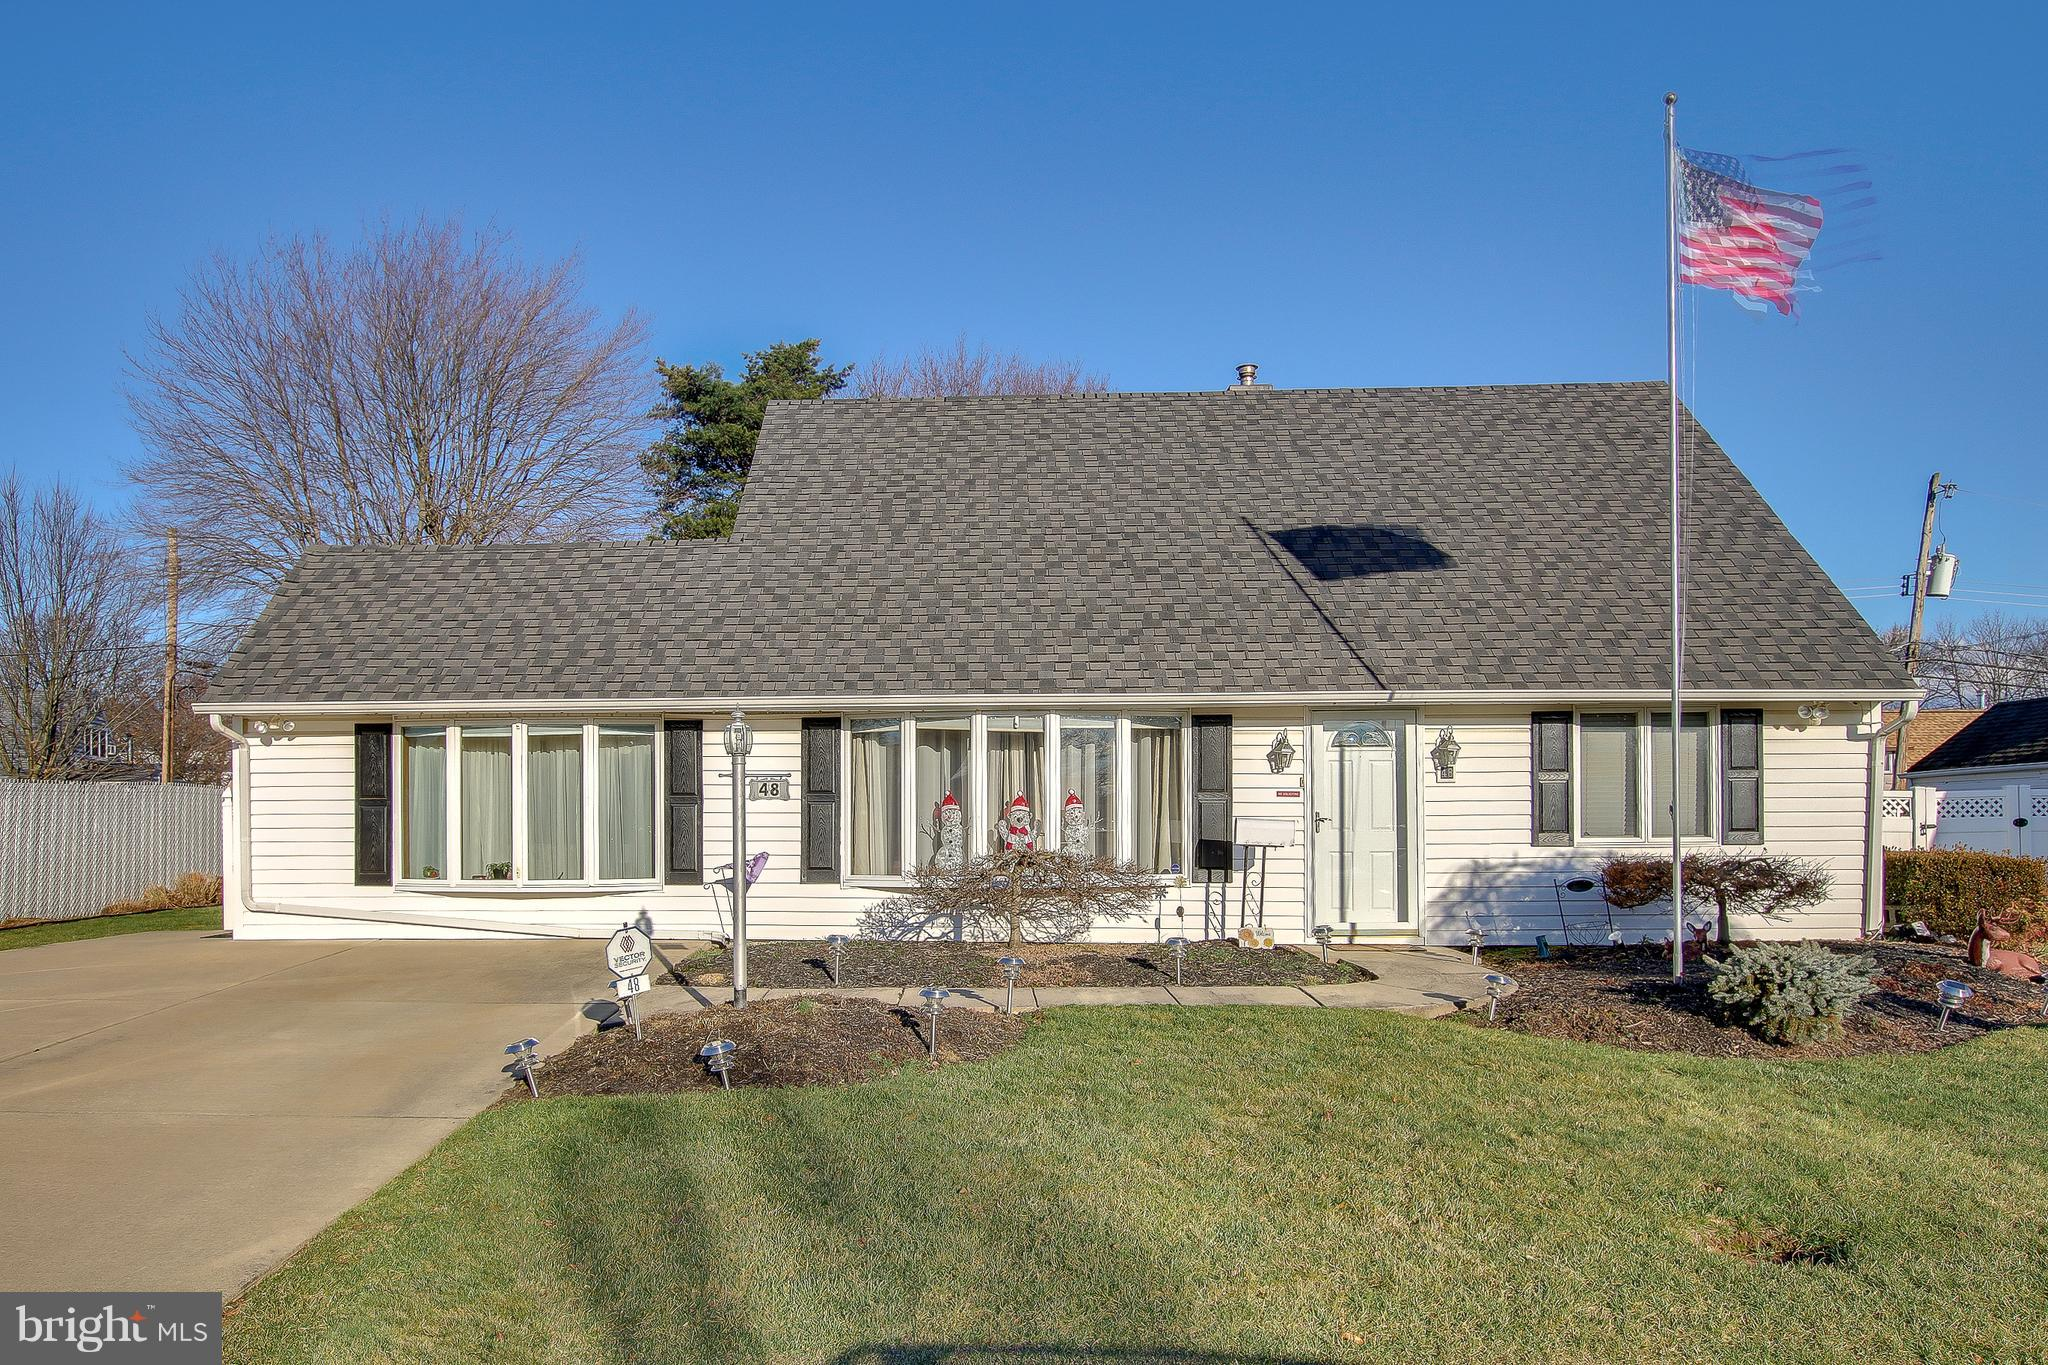 48 HEMLOCK ROAD, LEVITTOWN, PA 19056